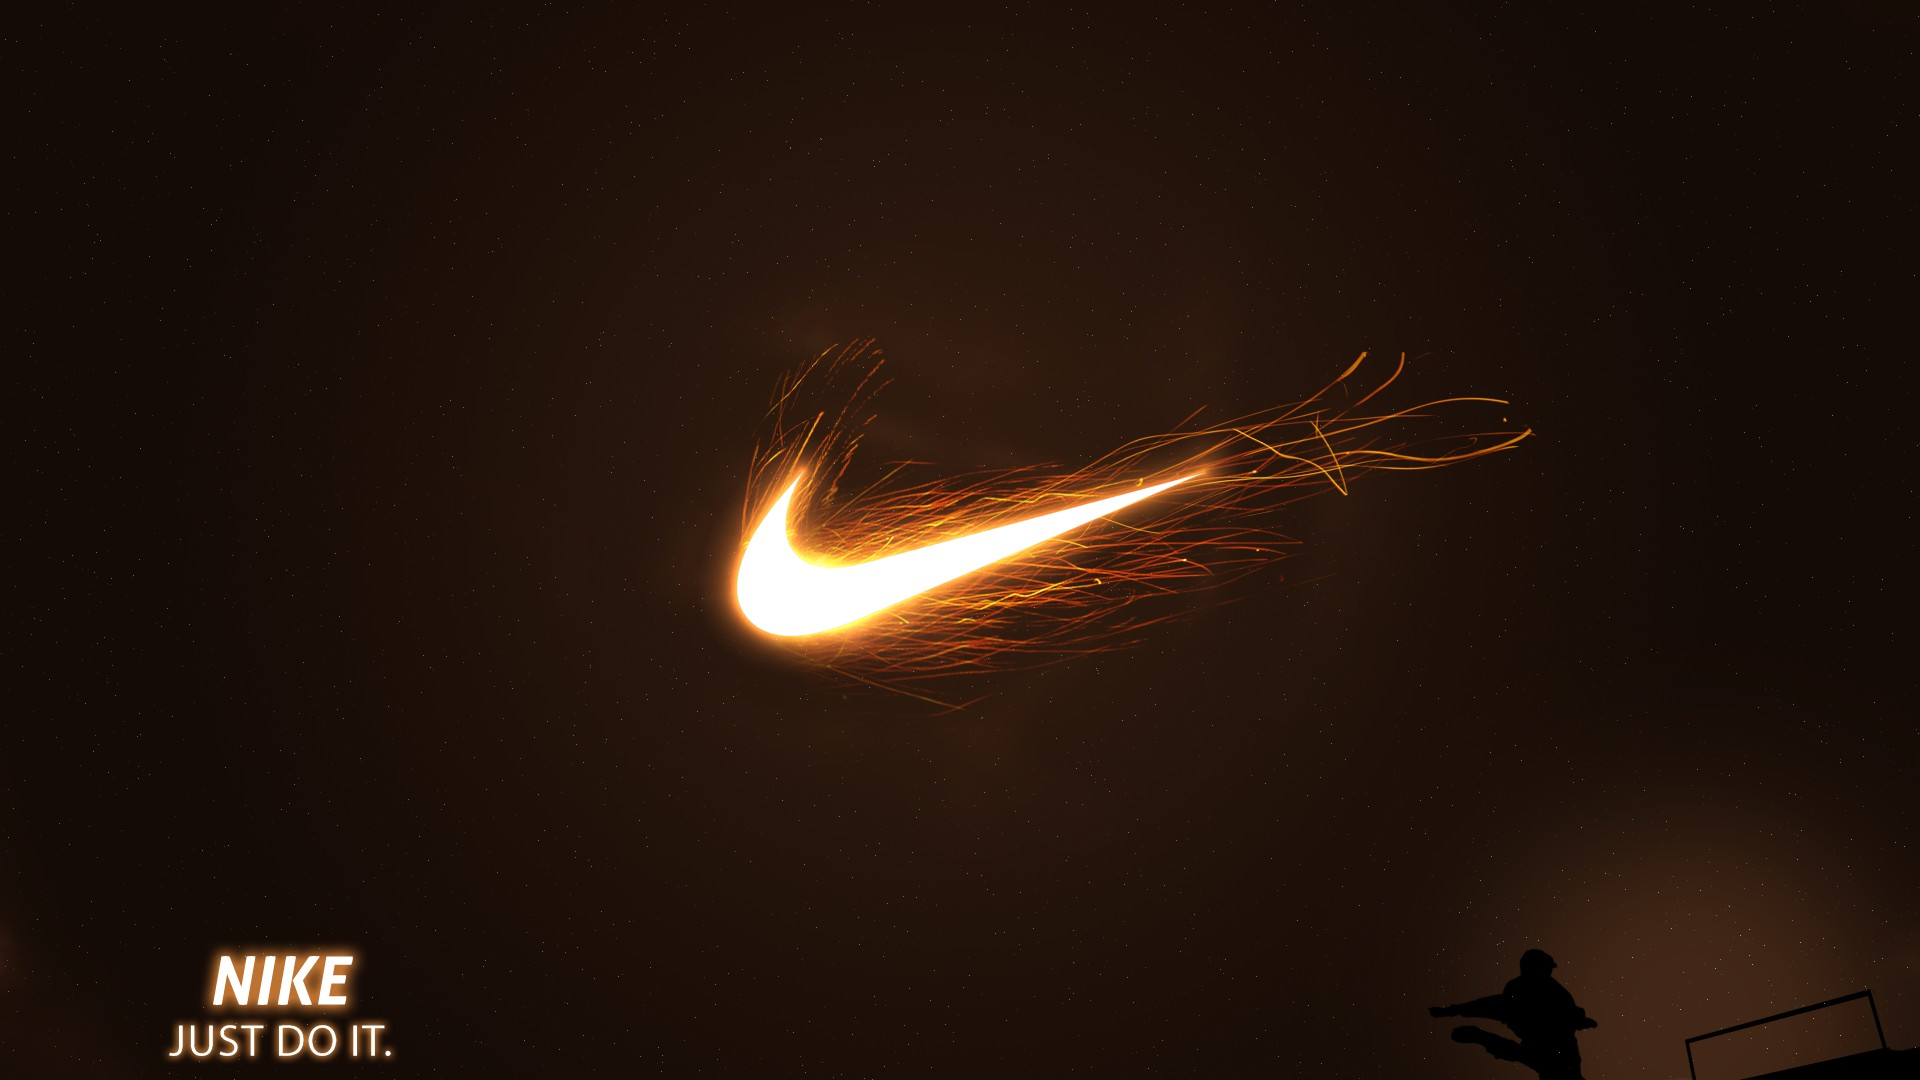 nike basketball wallpaper hd wallpapersafari